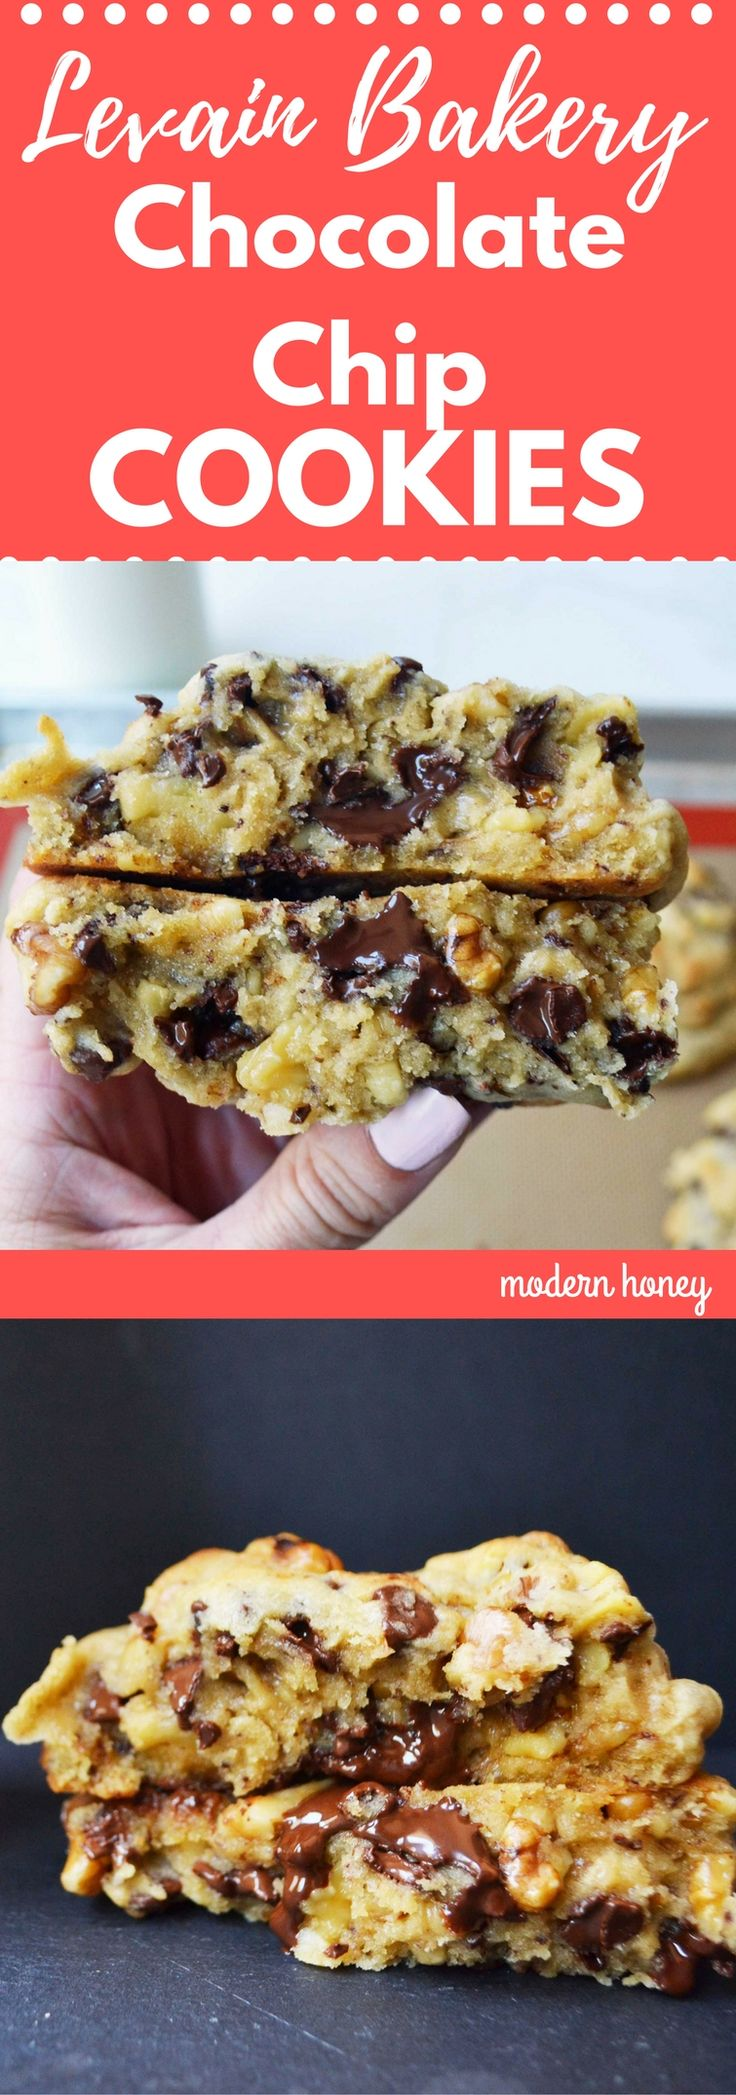 Levain Bakery Chocolate Chip Copycat Cookie Recipe. 5 Star Rating Chocolate Chip Cookie. The most popular recipe on Modern Honey.